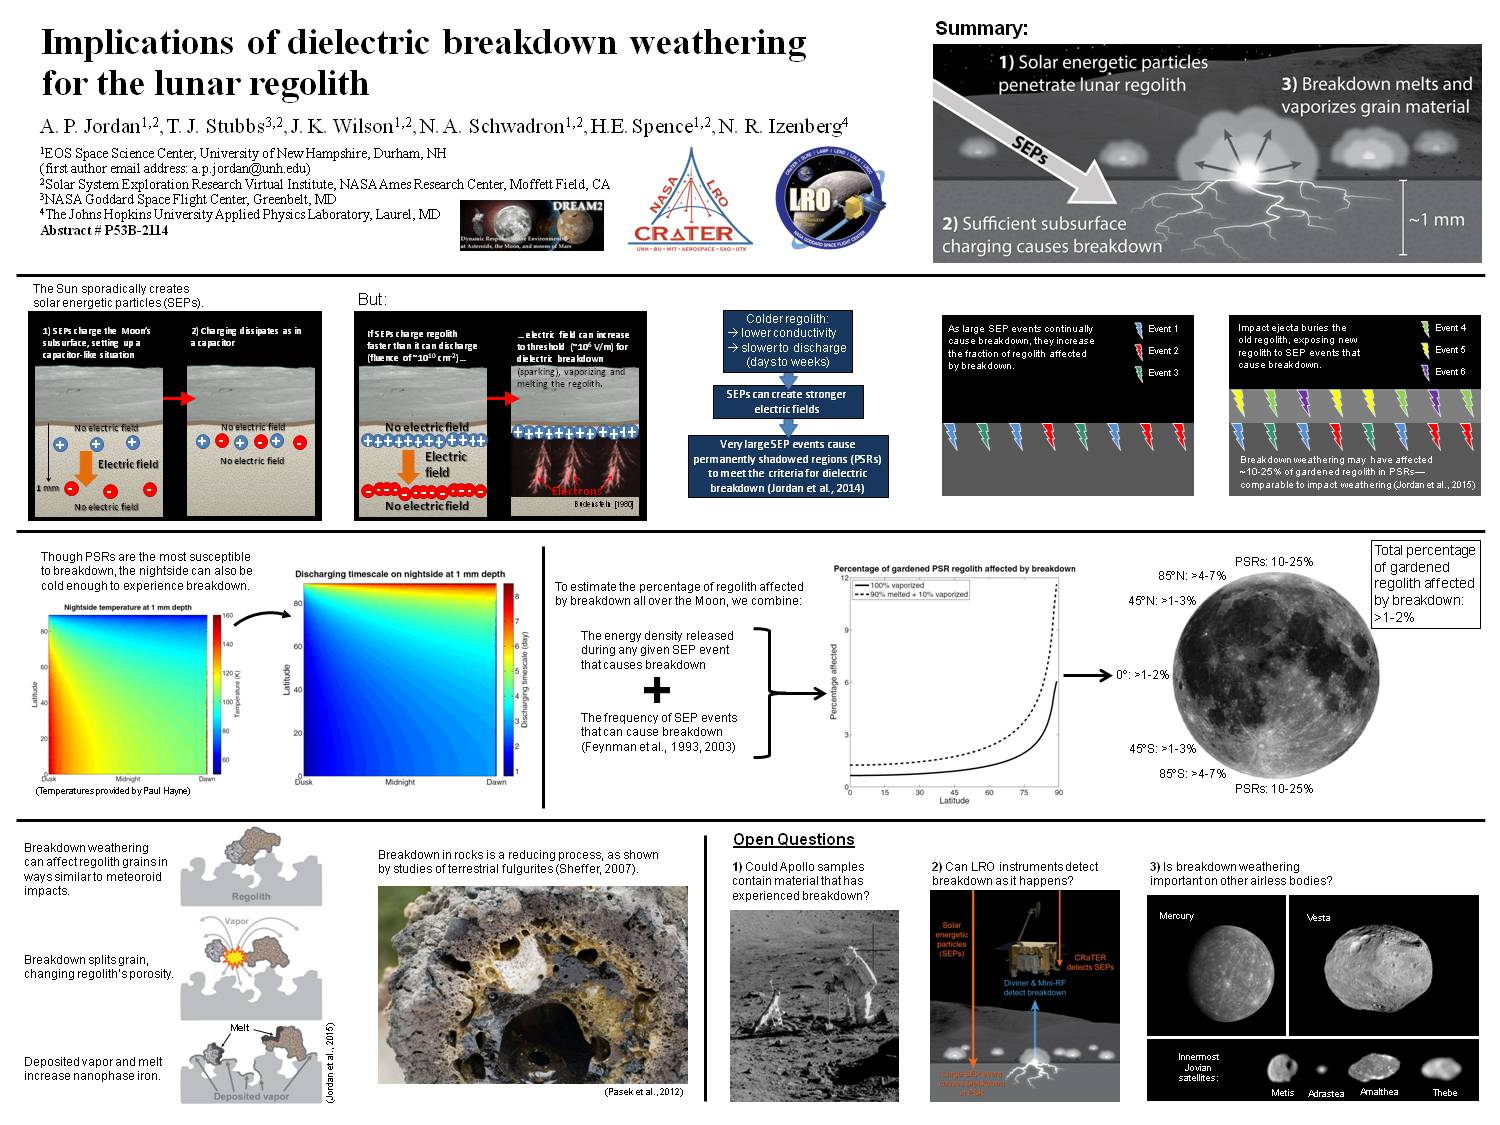 Implications Of Dielectric Breakdown Weathering For The Lunar Regolith by api44